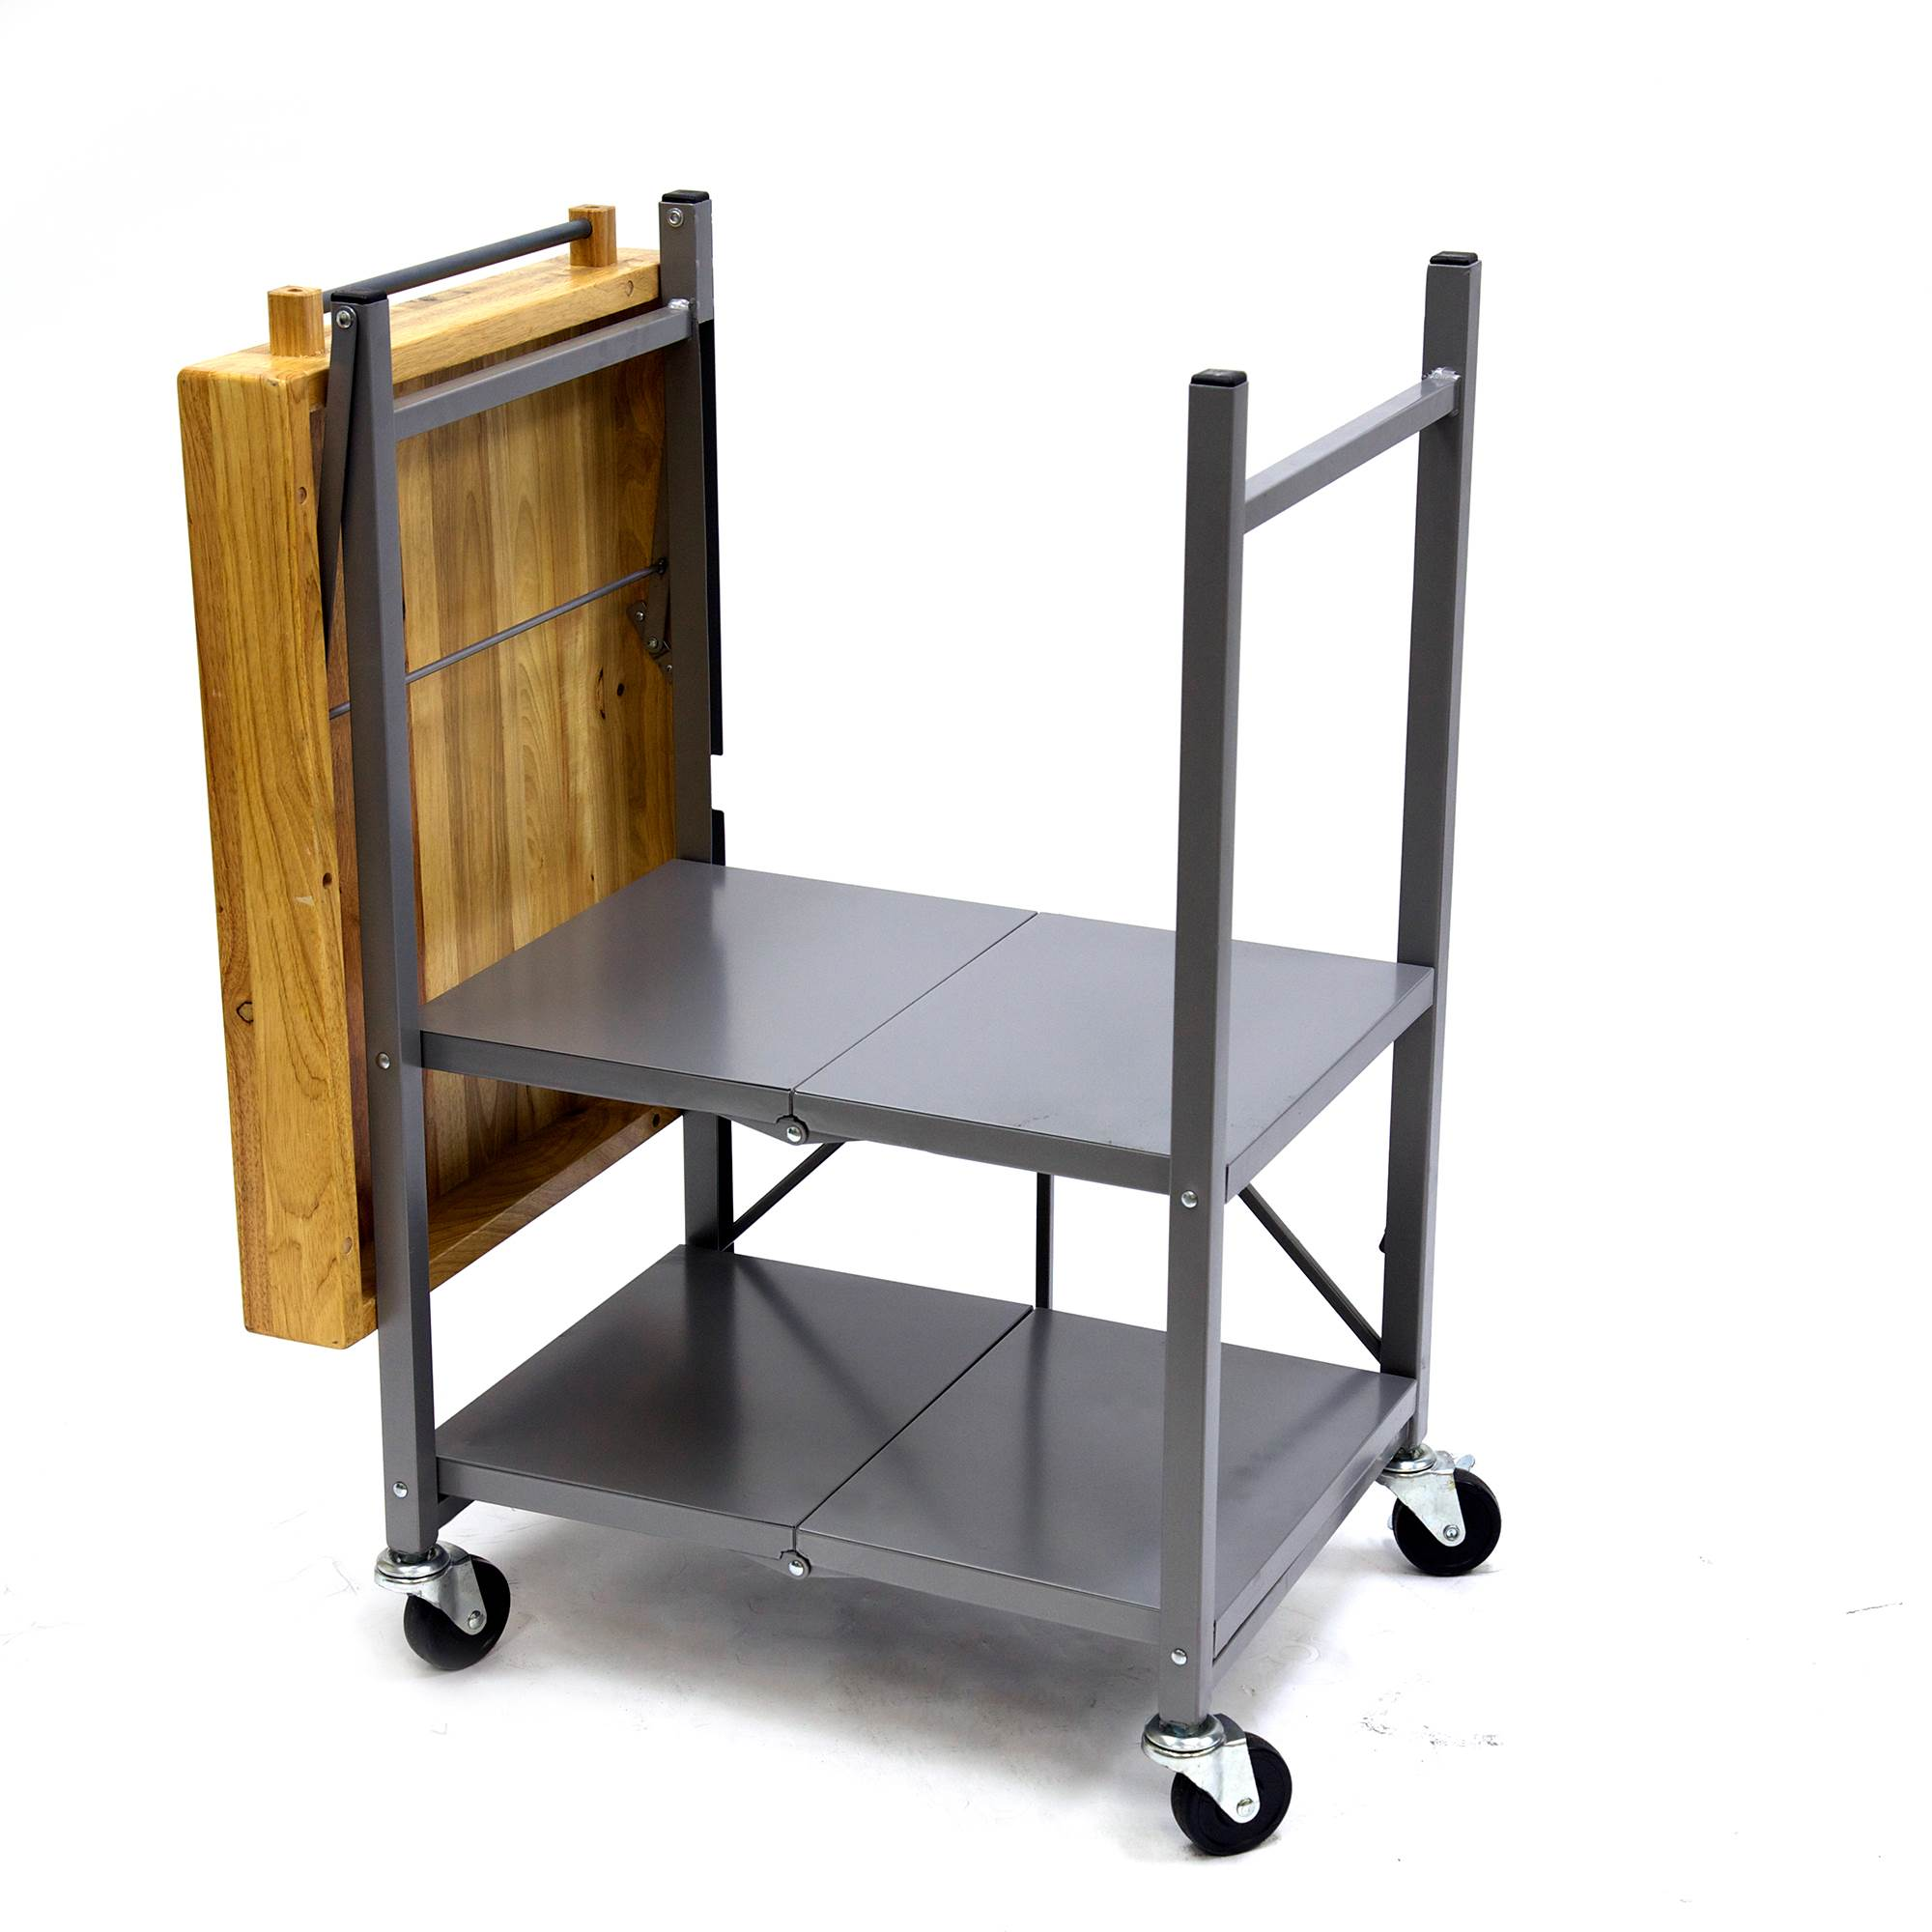 Origami Kitchen Cart Related Post Origami Kitchen Cart Hsn | 2000x2000